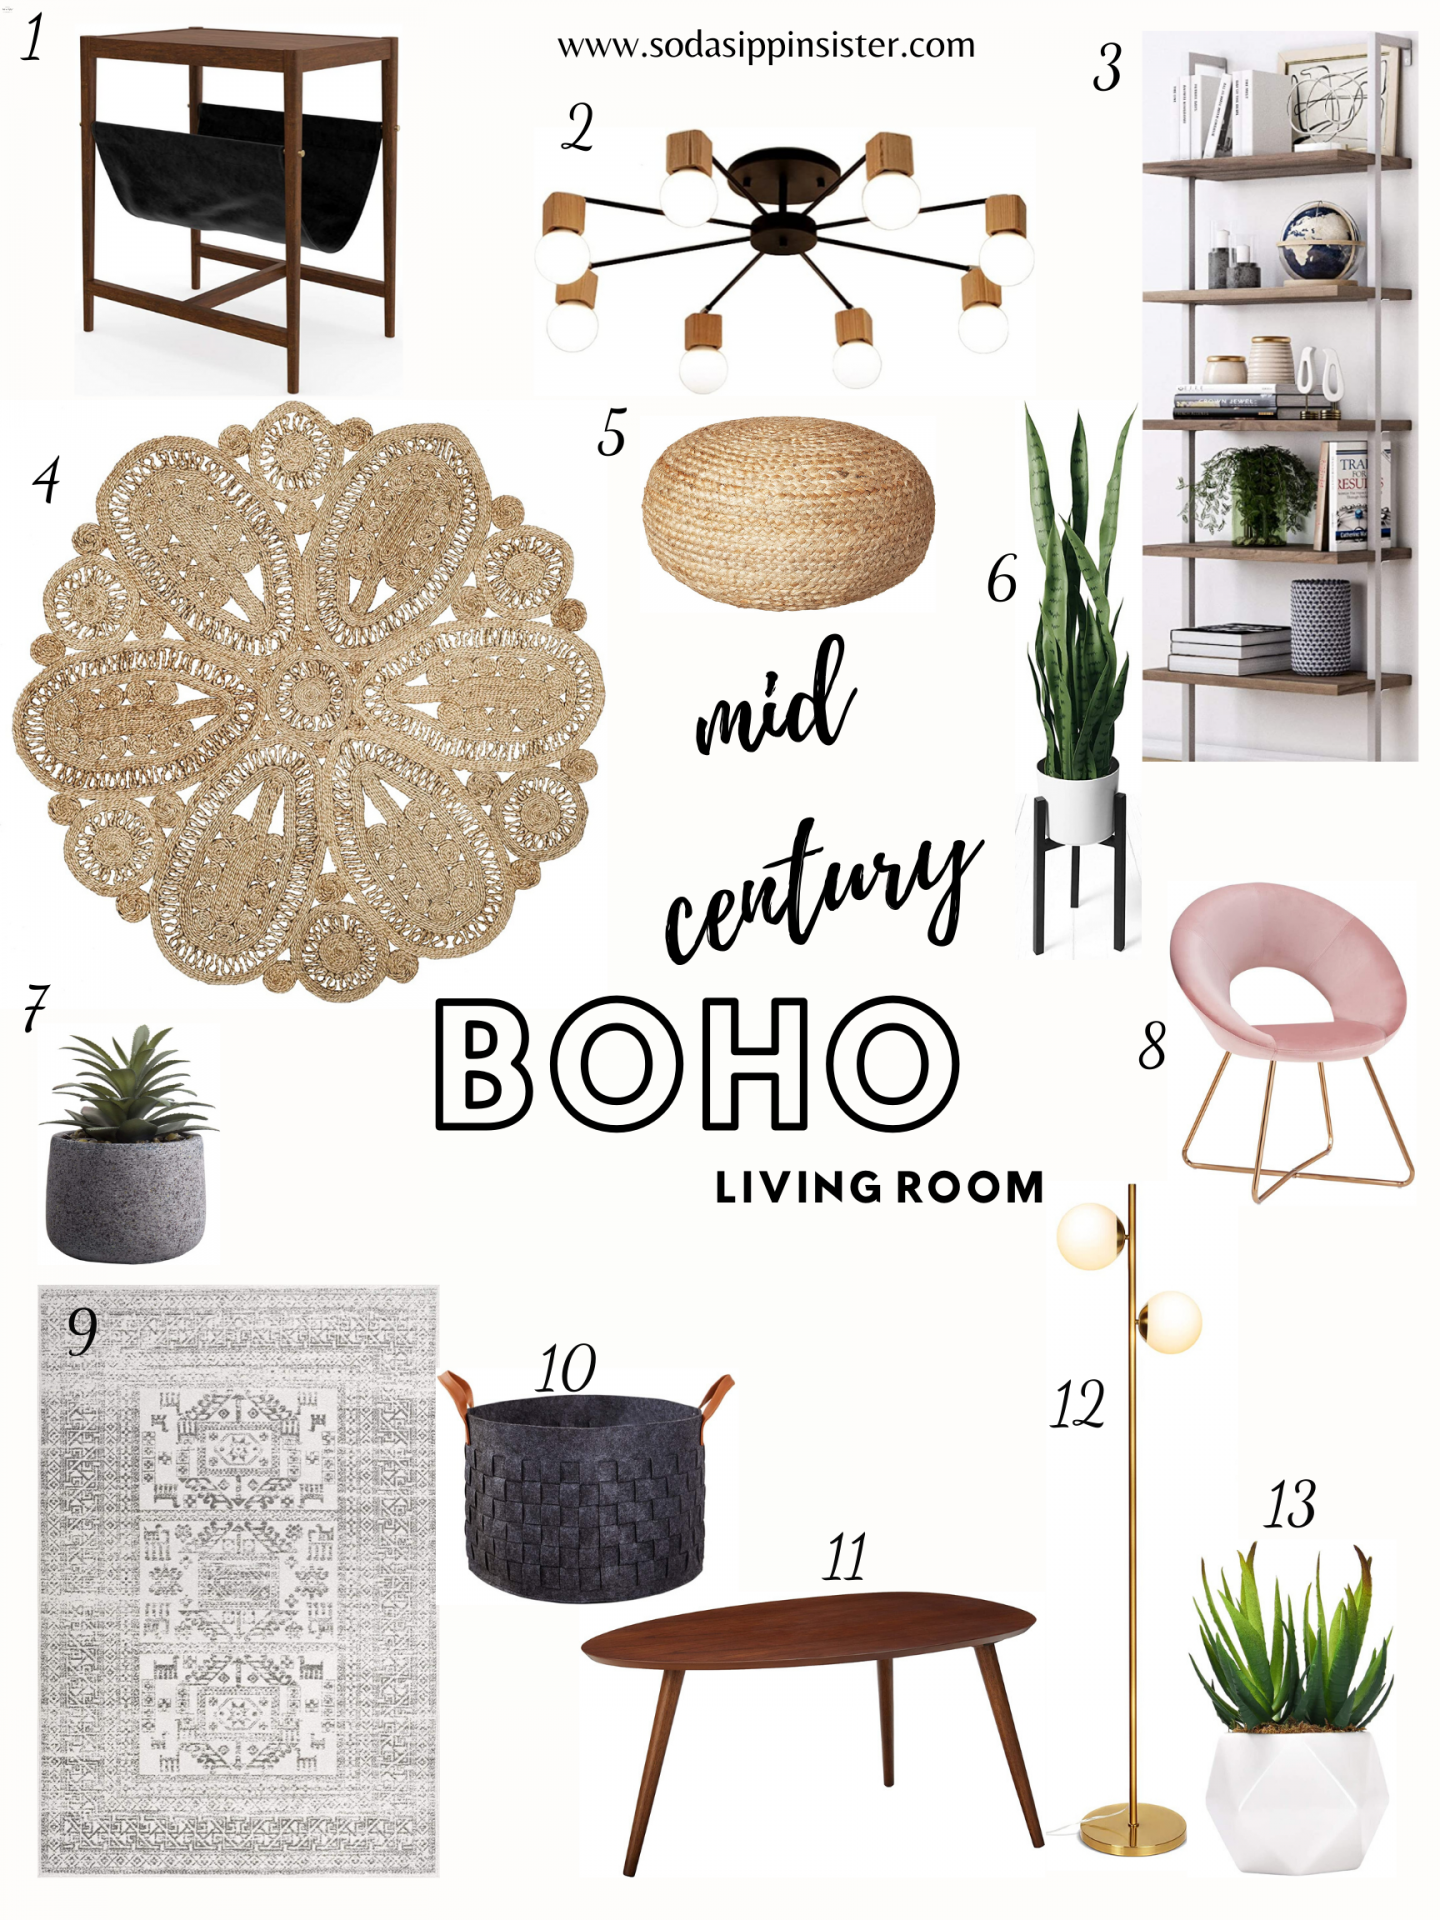 Affordable Finds to Mid Centurize Your Living Room